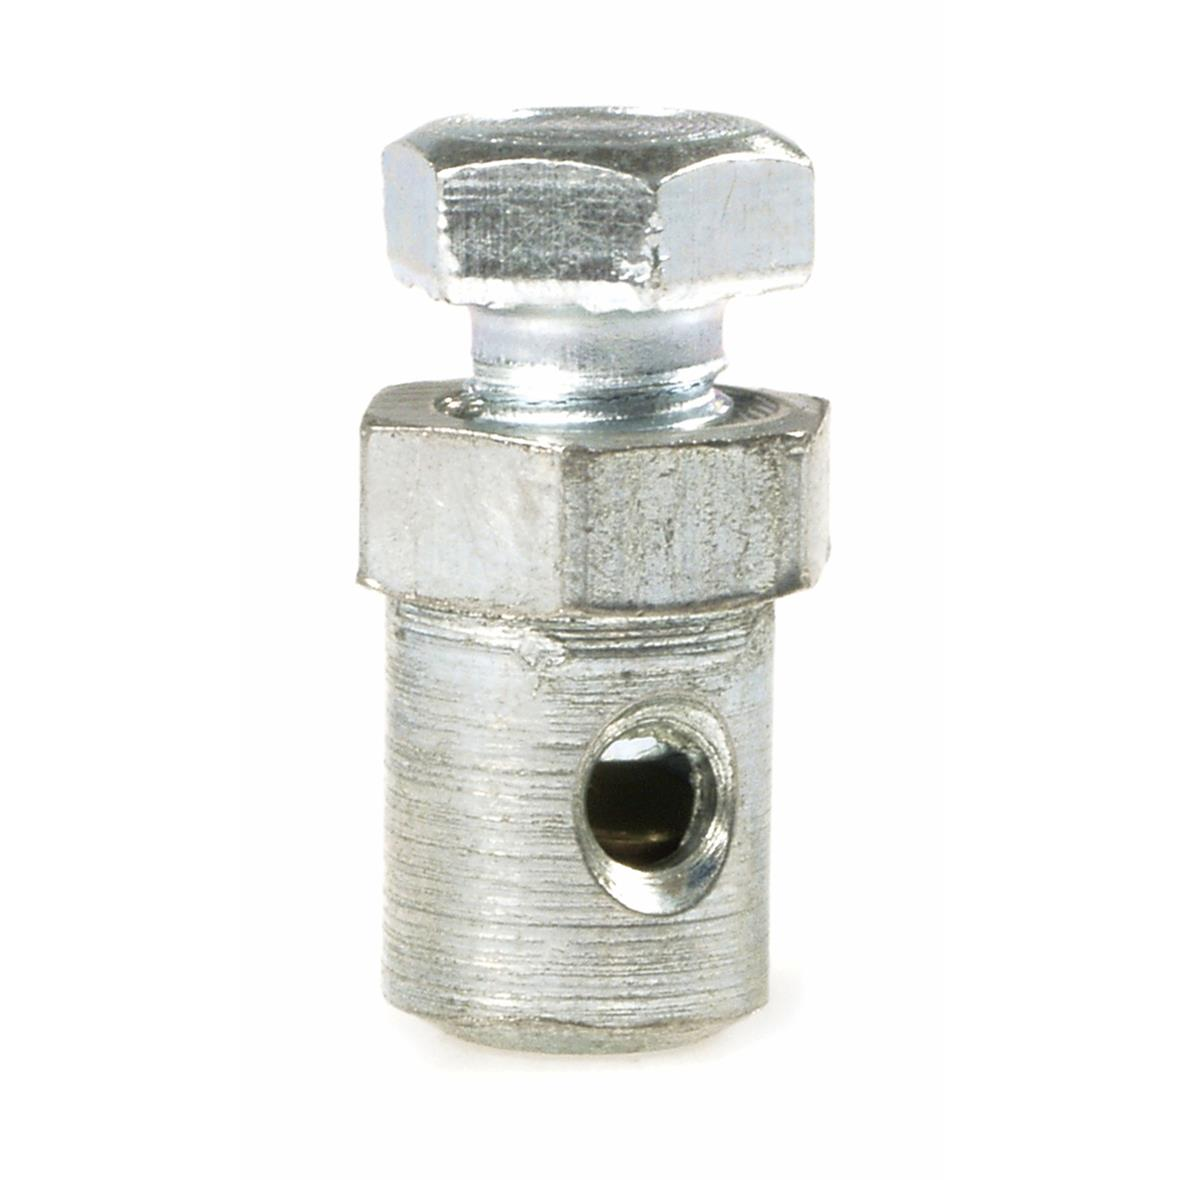 Product Image for 'Cable Nipple L 11mm, Ø 6,8 mm, hexagonal, gear/clutch, RMSTitle'